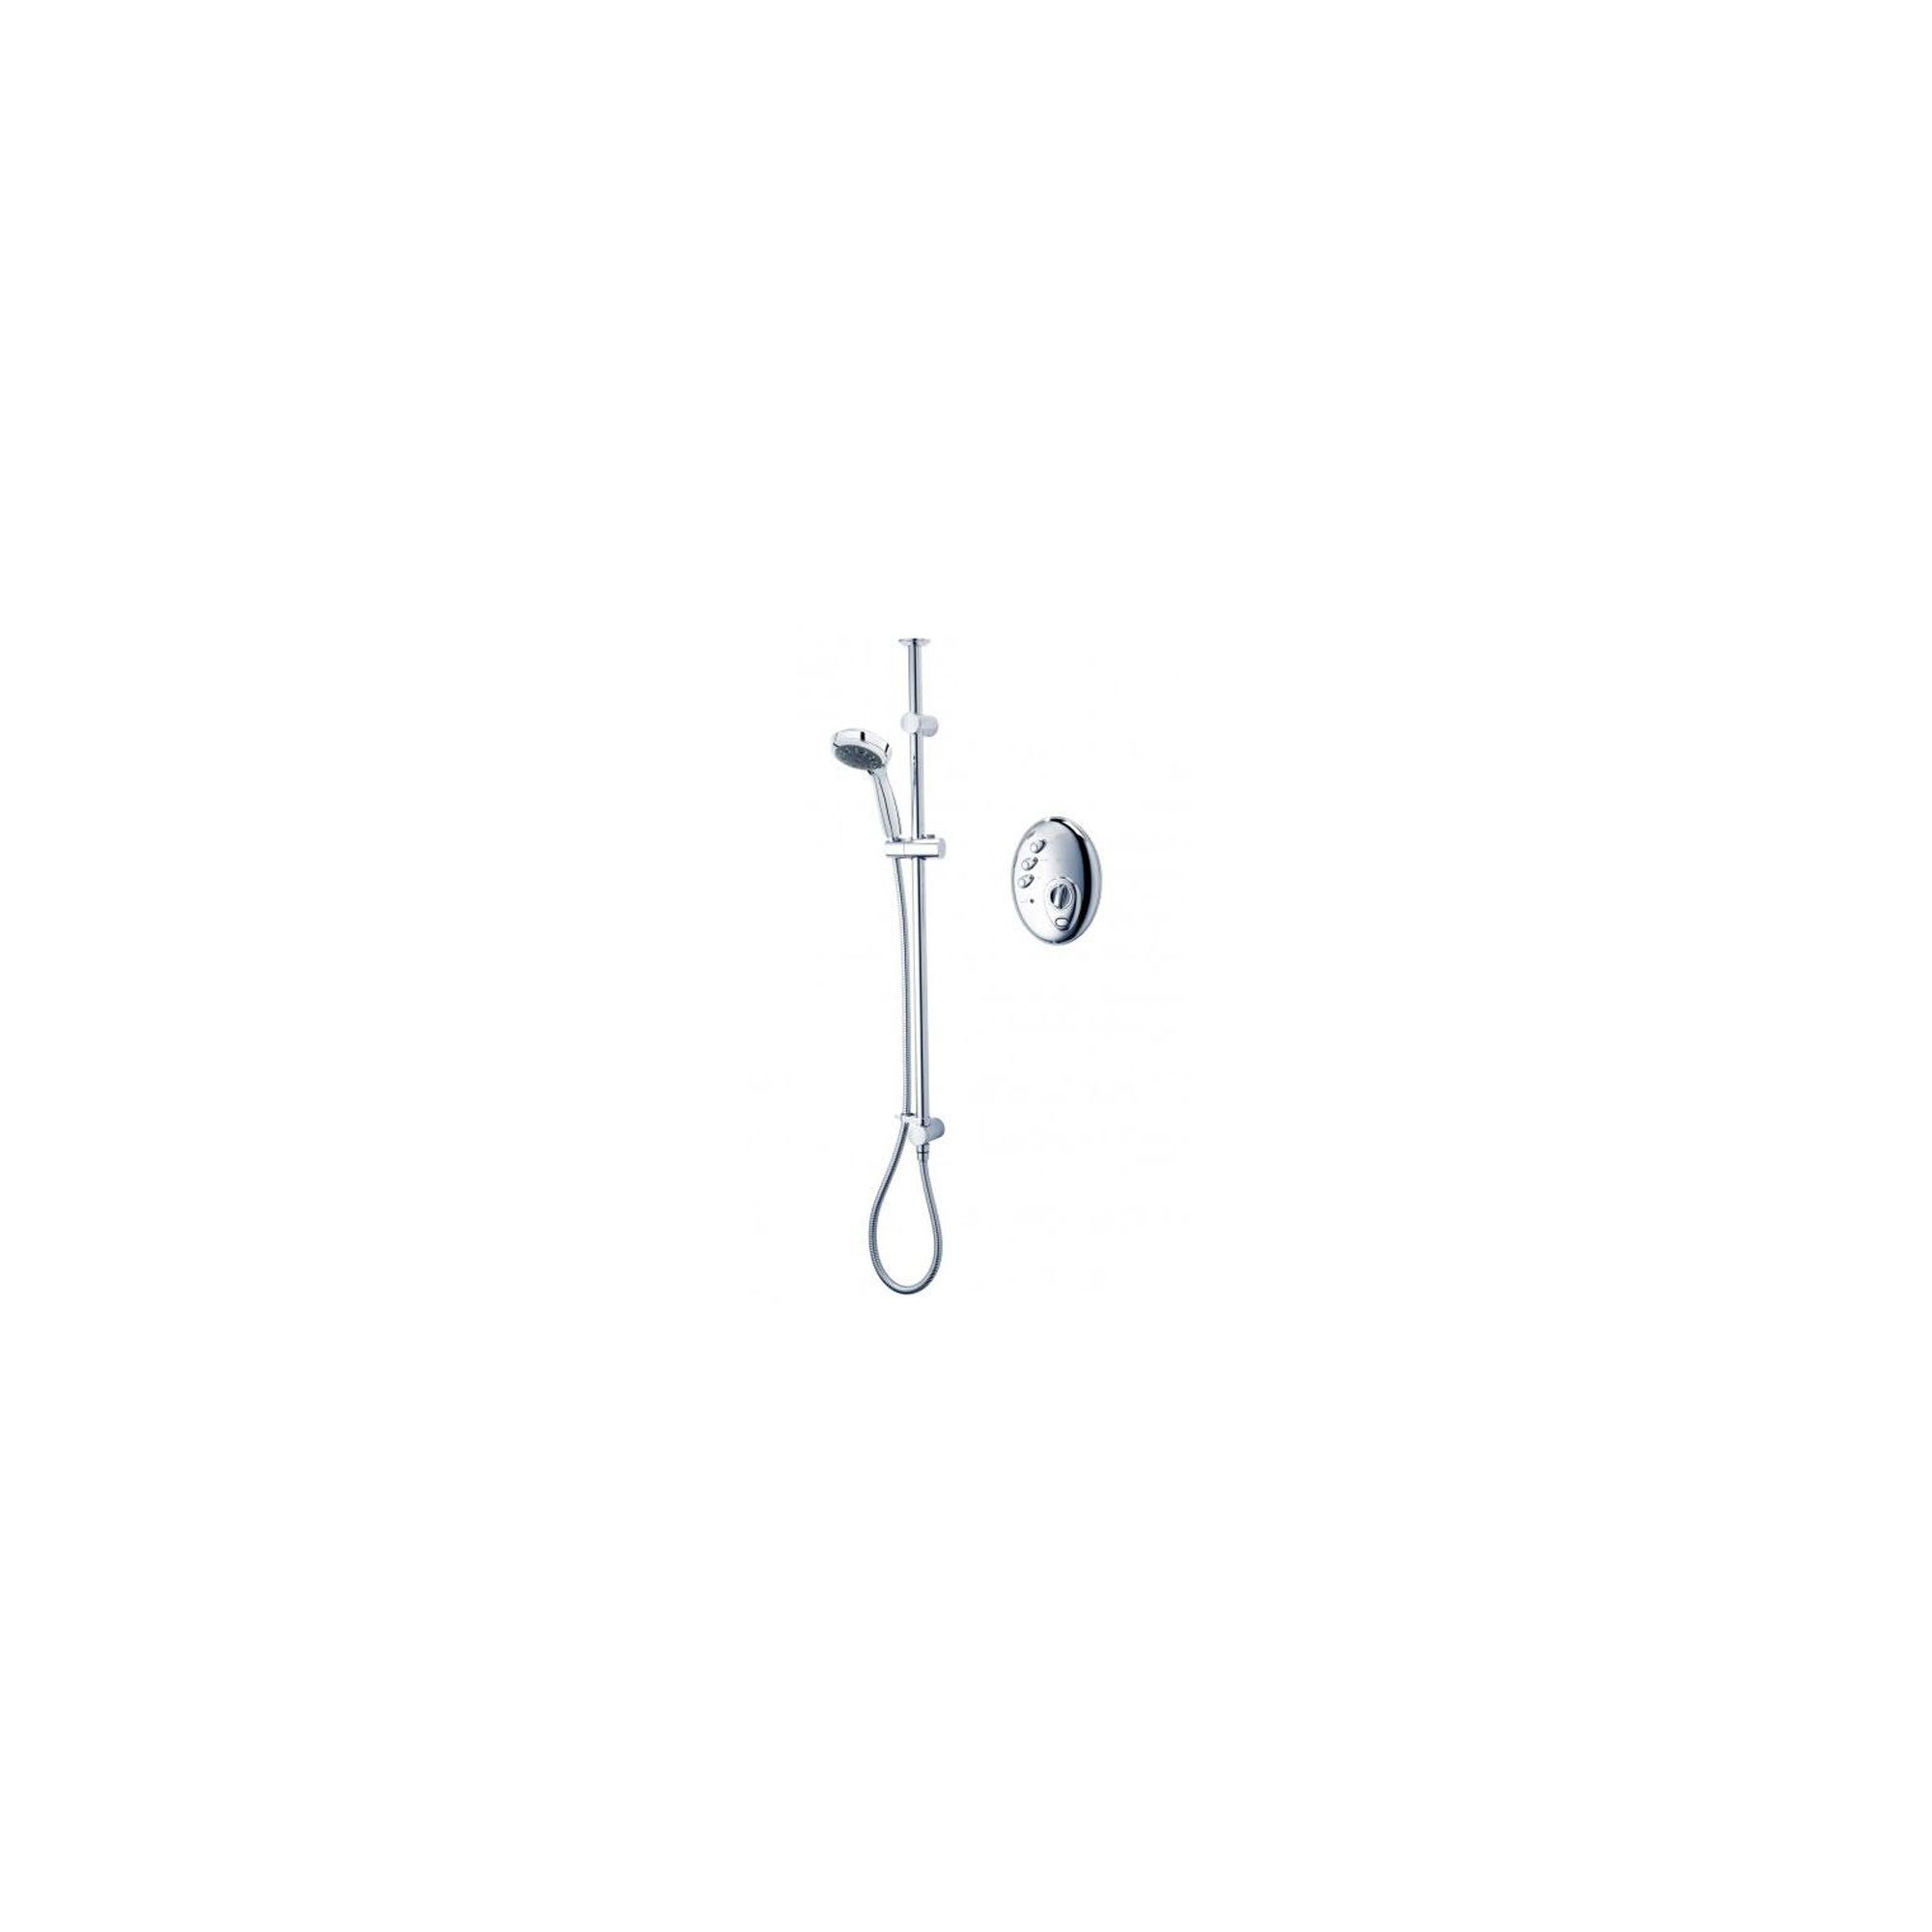 Triton Aspirante Digital Wireless Electric Shower Chrome 9.5 kW at Tesco Direct